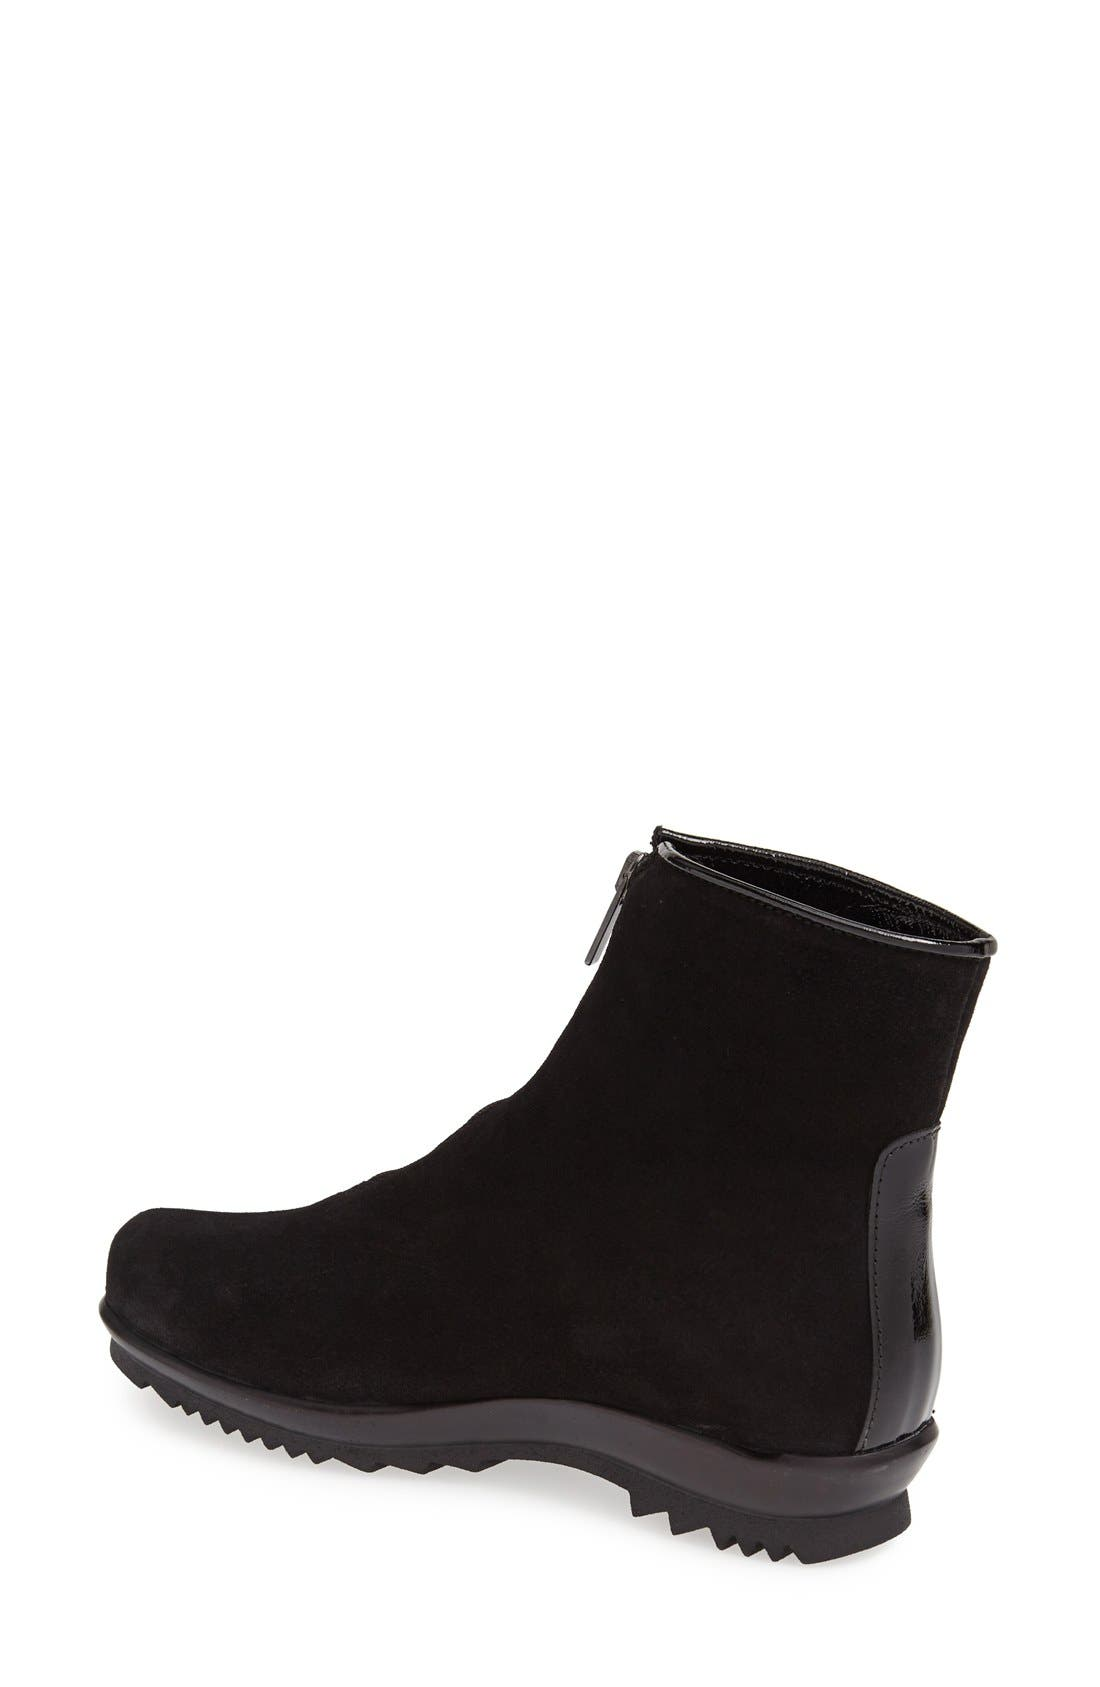 'Tiana' Water Resistant Boot,                             Alternate thumbnail 2, color,                             BLACK